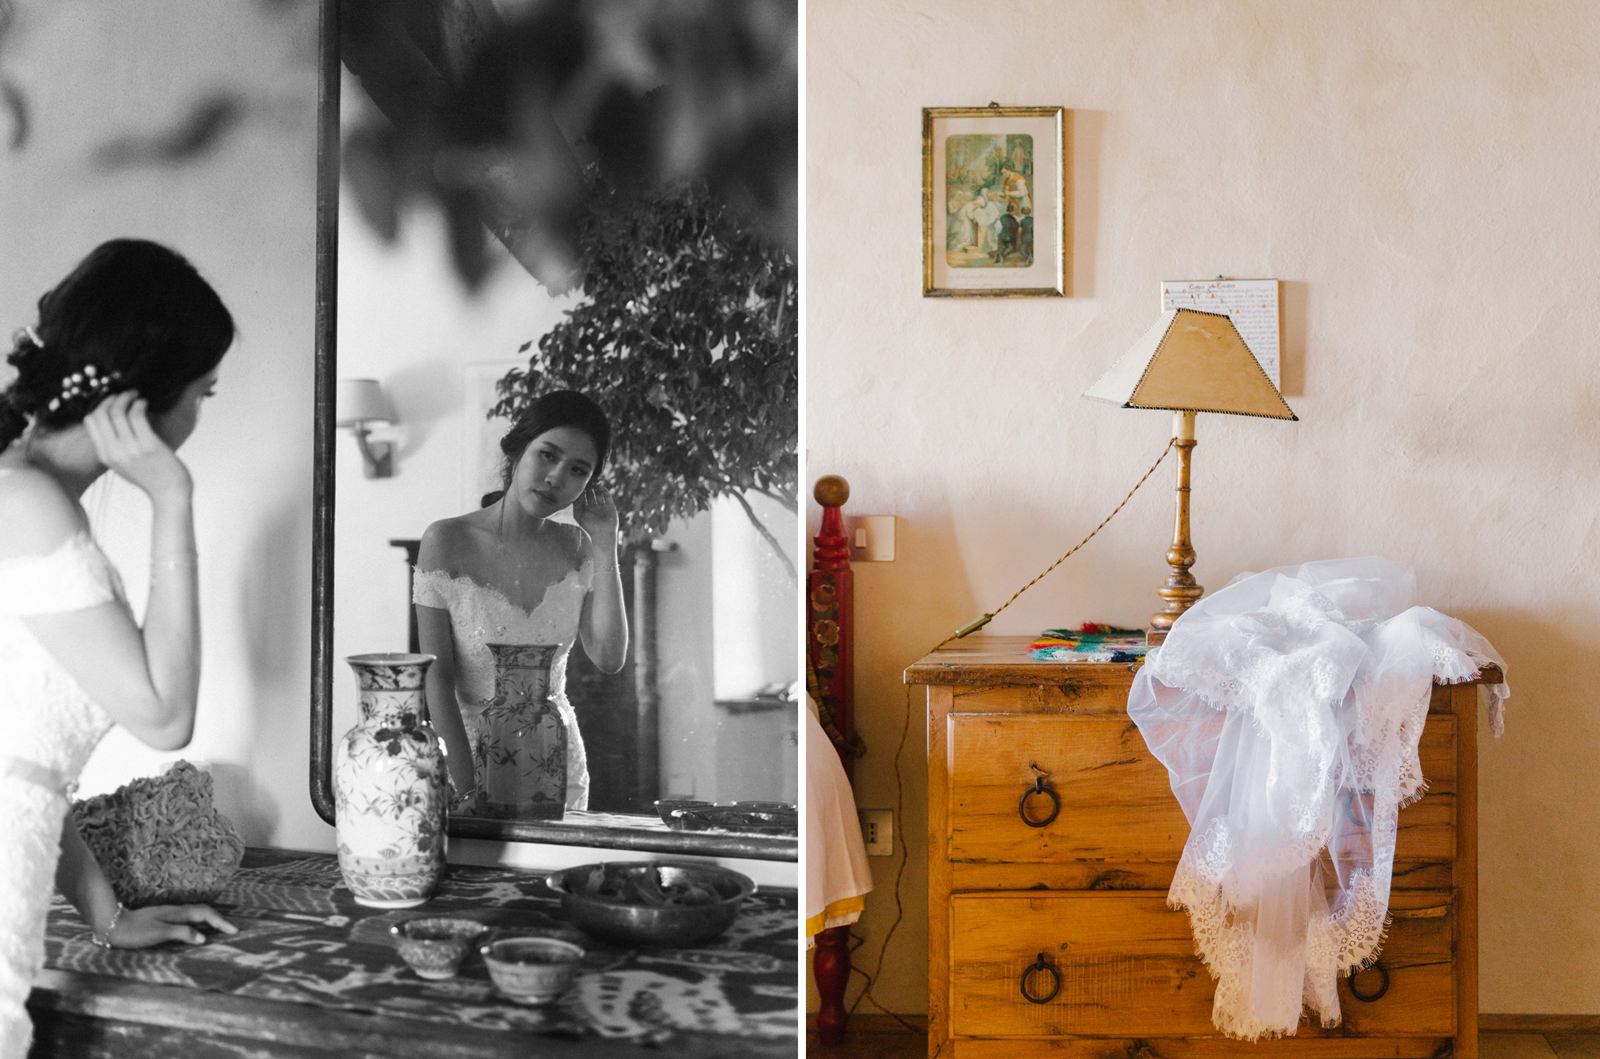 Destination Wedding in Milan Italy by Fine Art Photographer CHYMO & MORE www.chymomore.com